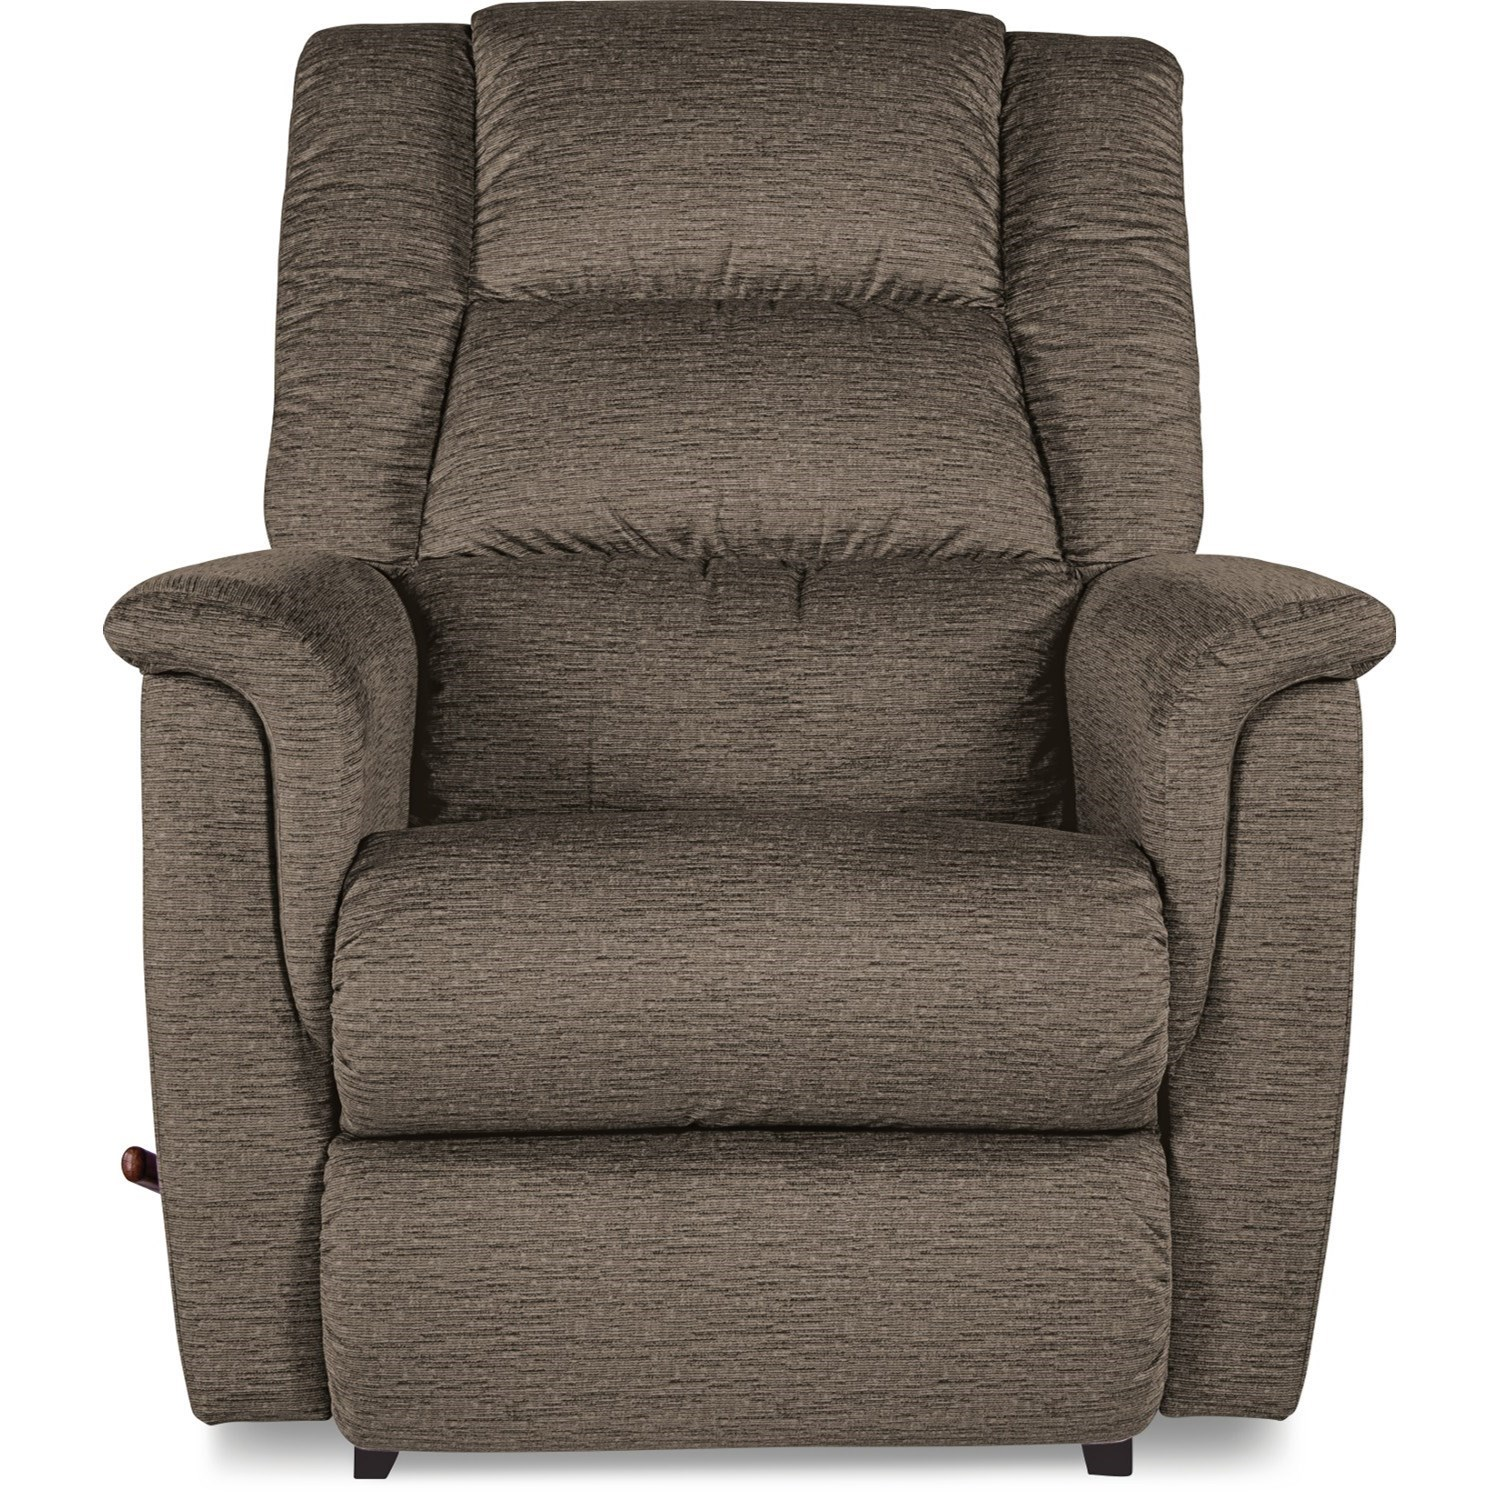 Murray Power Wall Saver Recliner by La-Z-Boy at Home Furnishings Direct